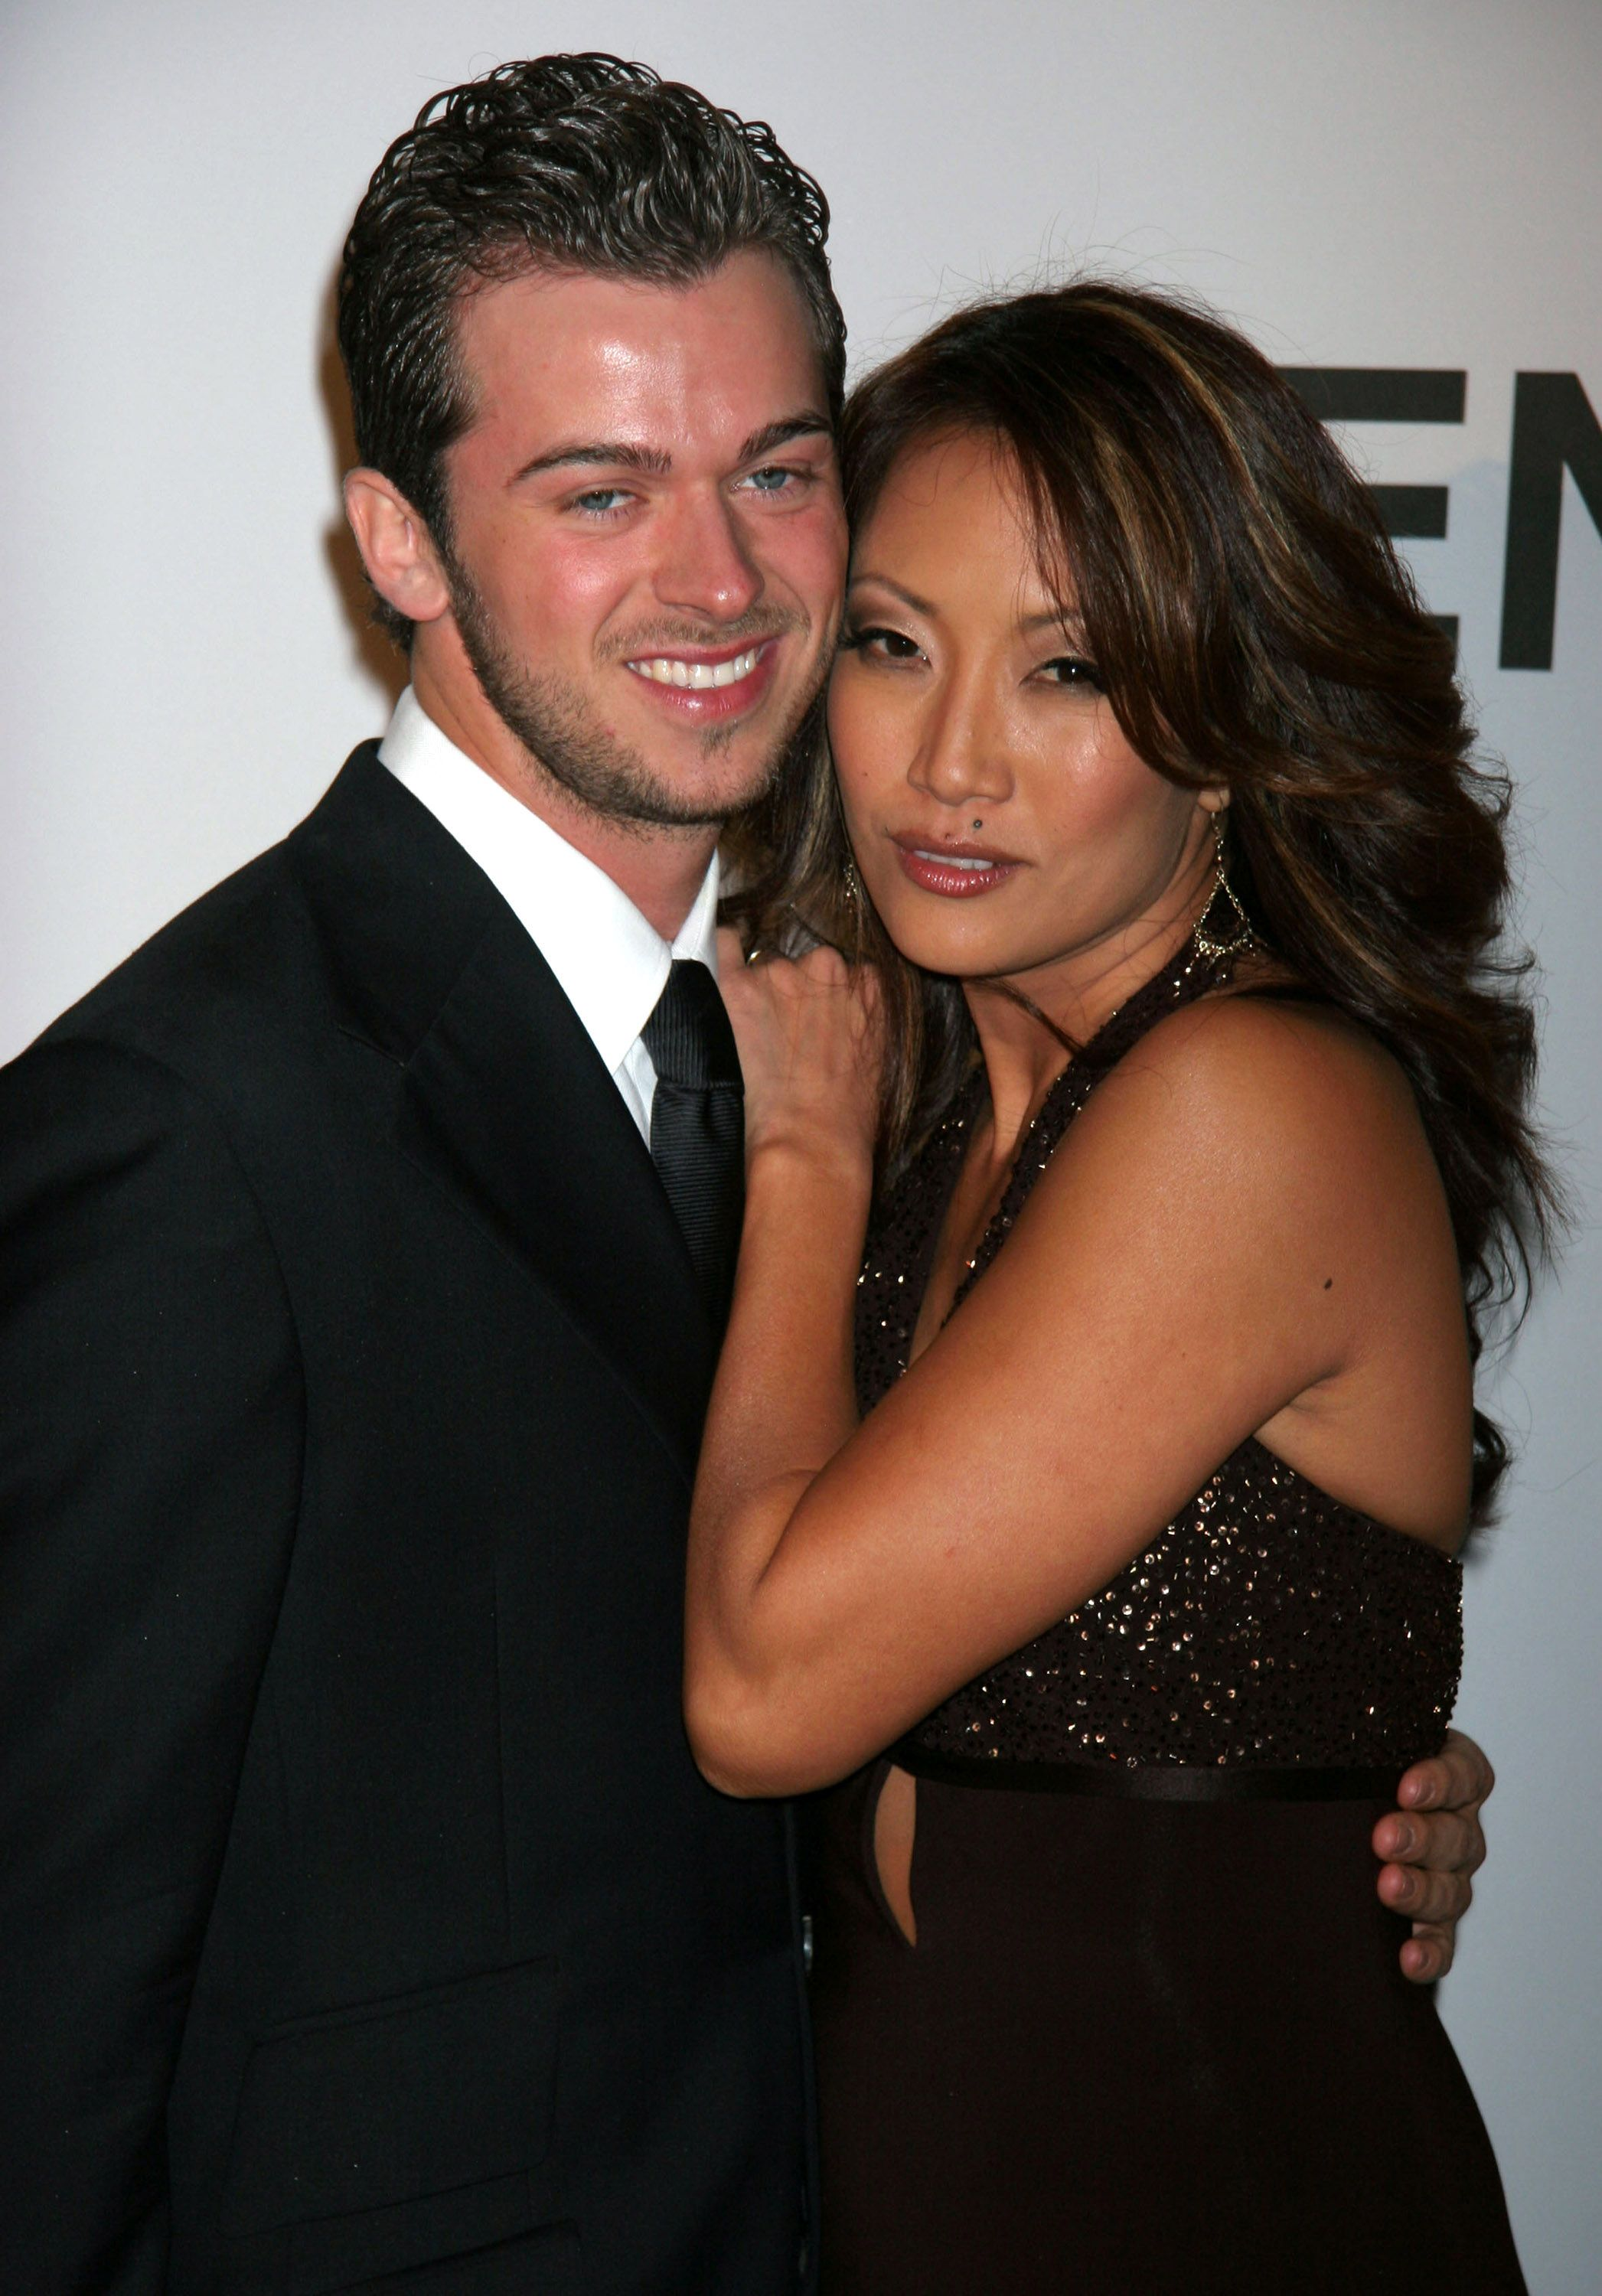 """Artem Chigvinsev and Carrie Ann at the """"Class Of Hope Prom 2007"""" Charity Benefit  in Studio City, California 